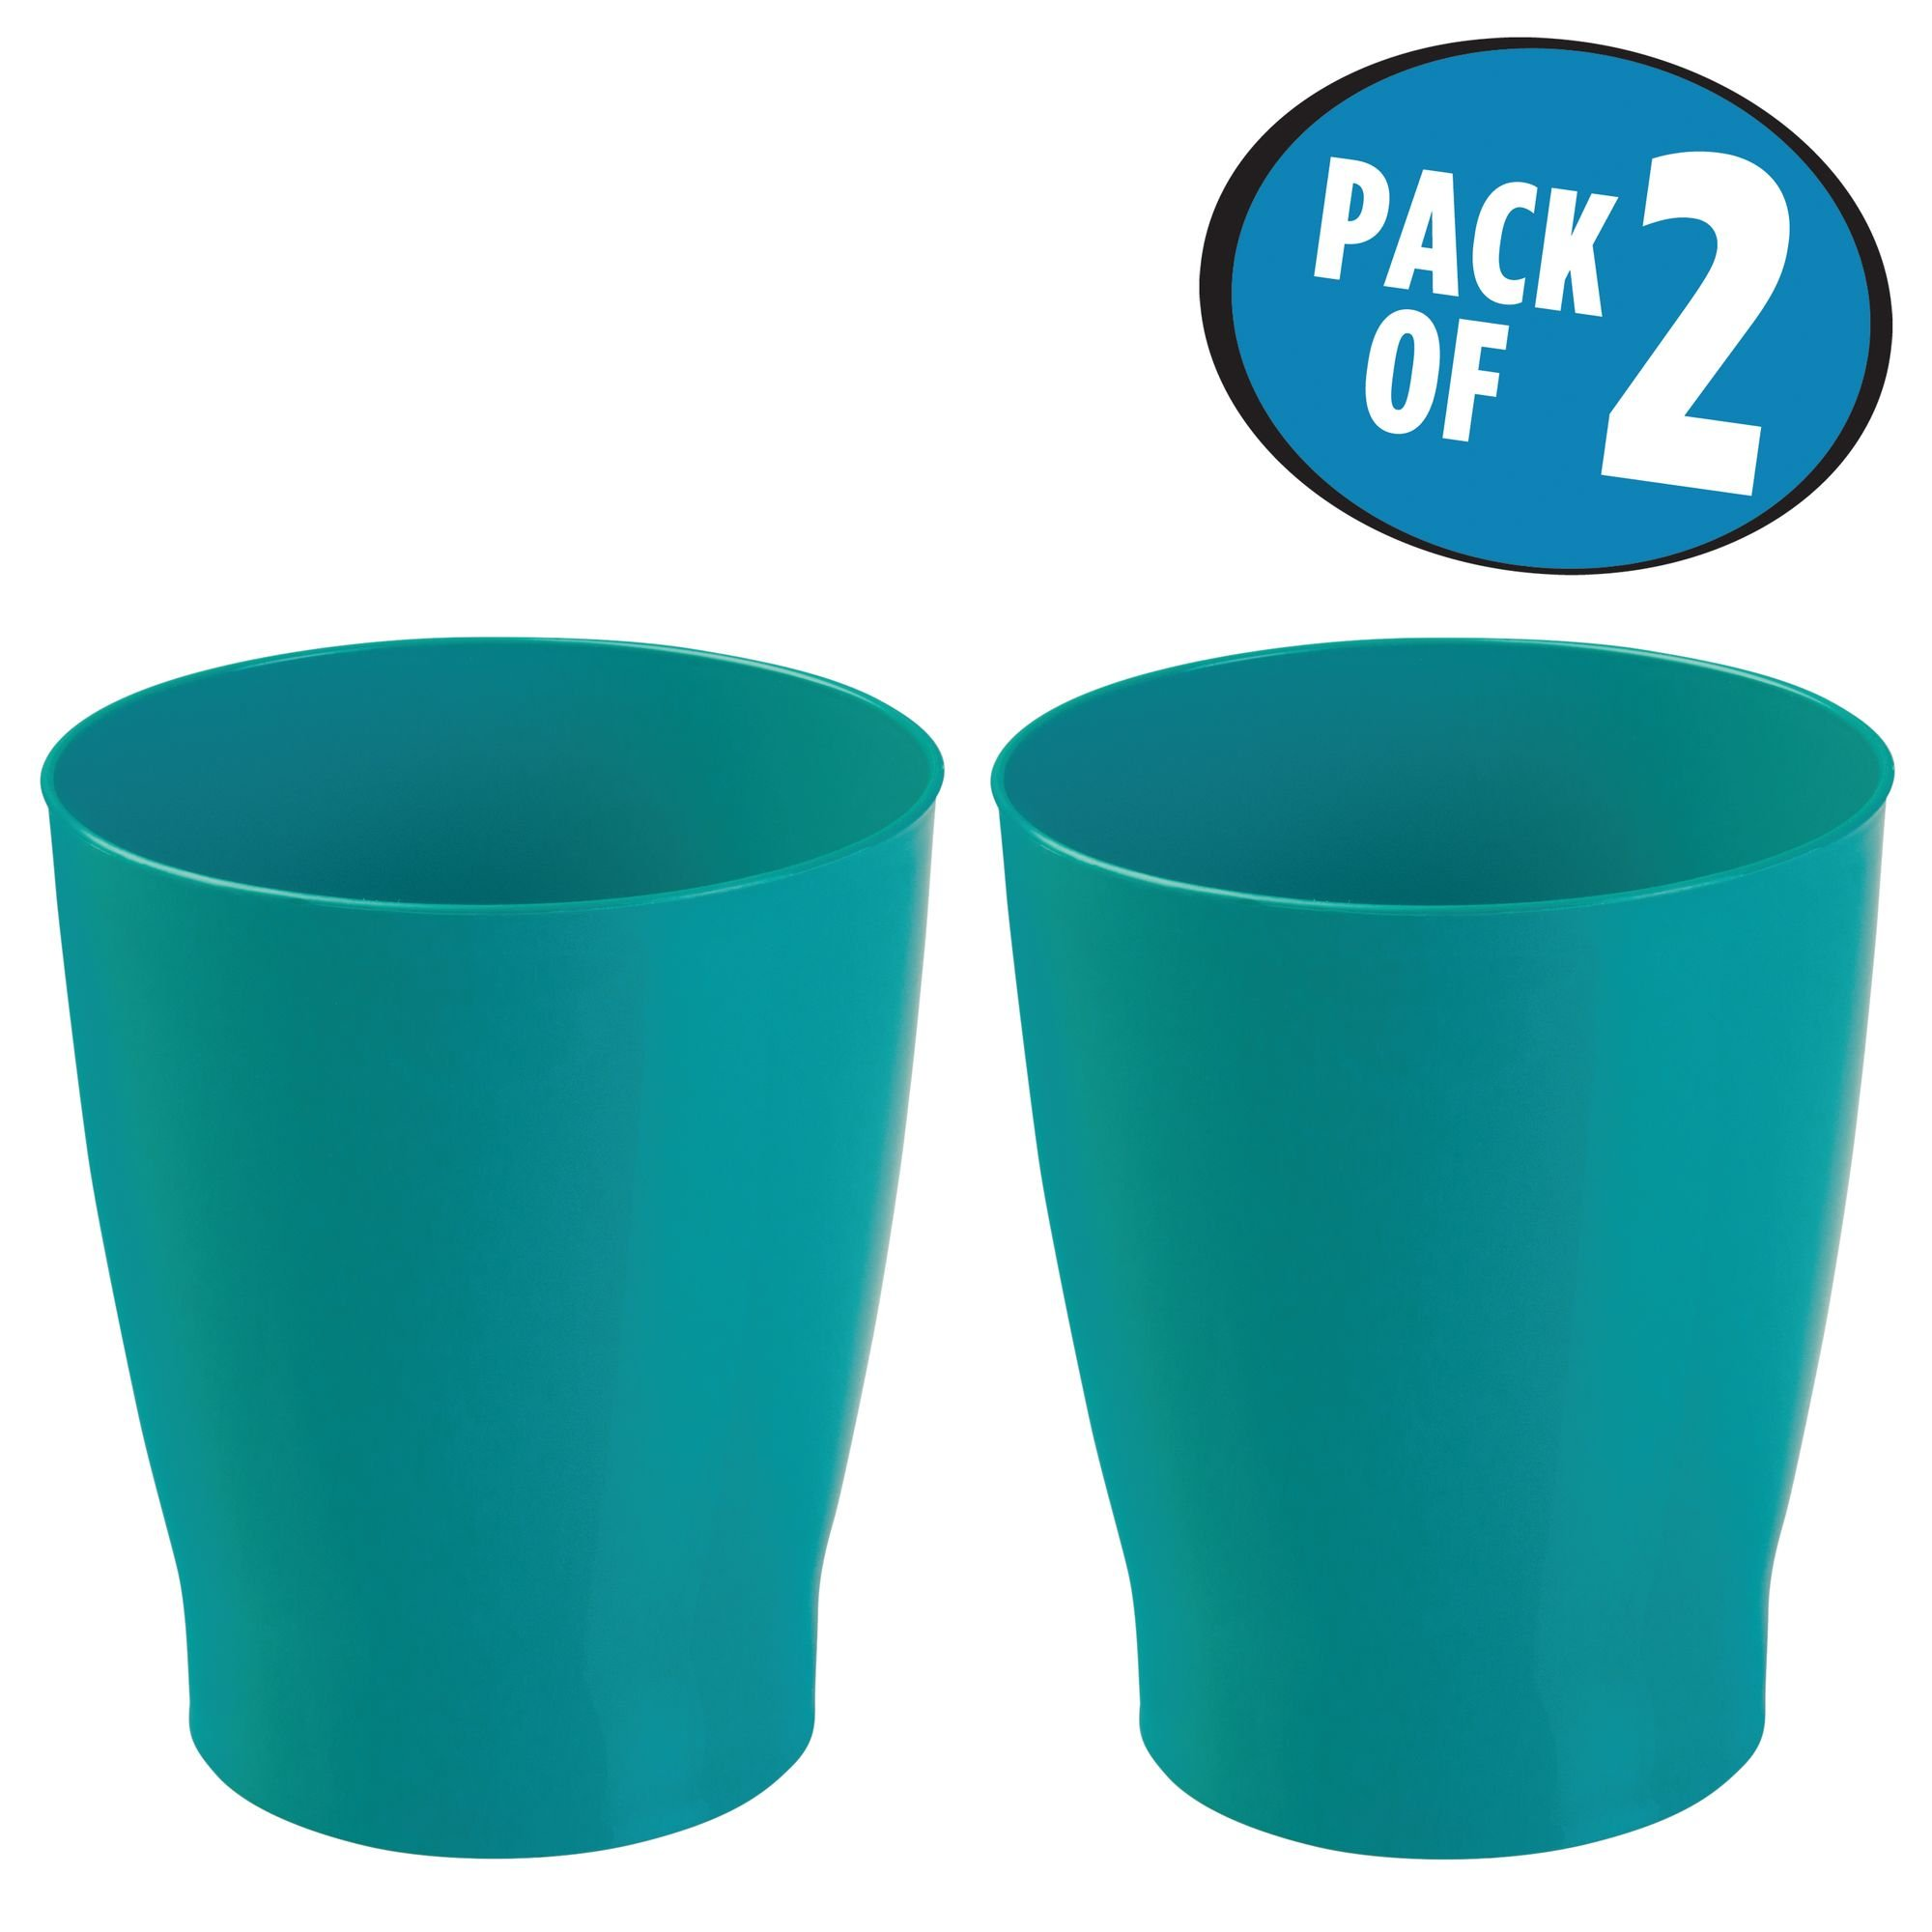 mDesign Slim Round Plastic Small Trash Can Wastebasket, Garbage Container Bin for Bathrooms, Powder Rooms, Kitchens, Home Offices, Kids Rooms - Pack of 2, Teal